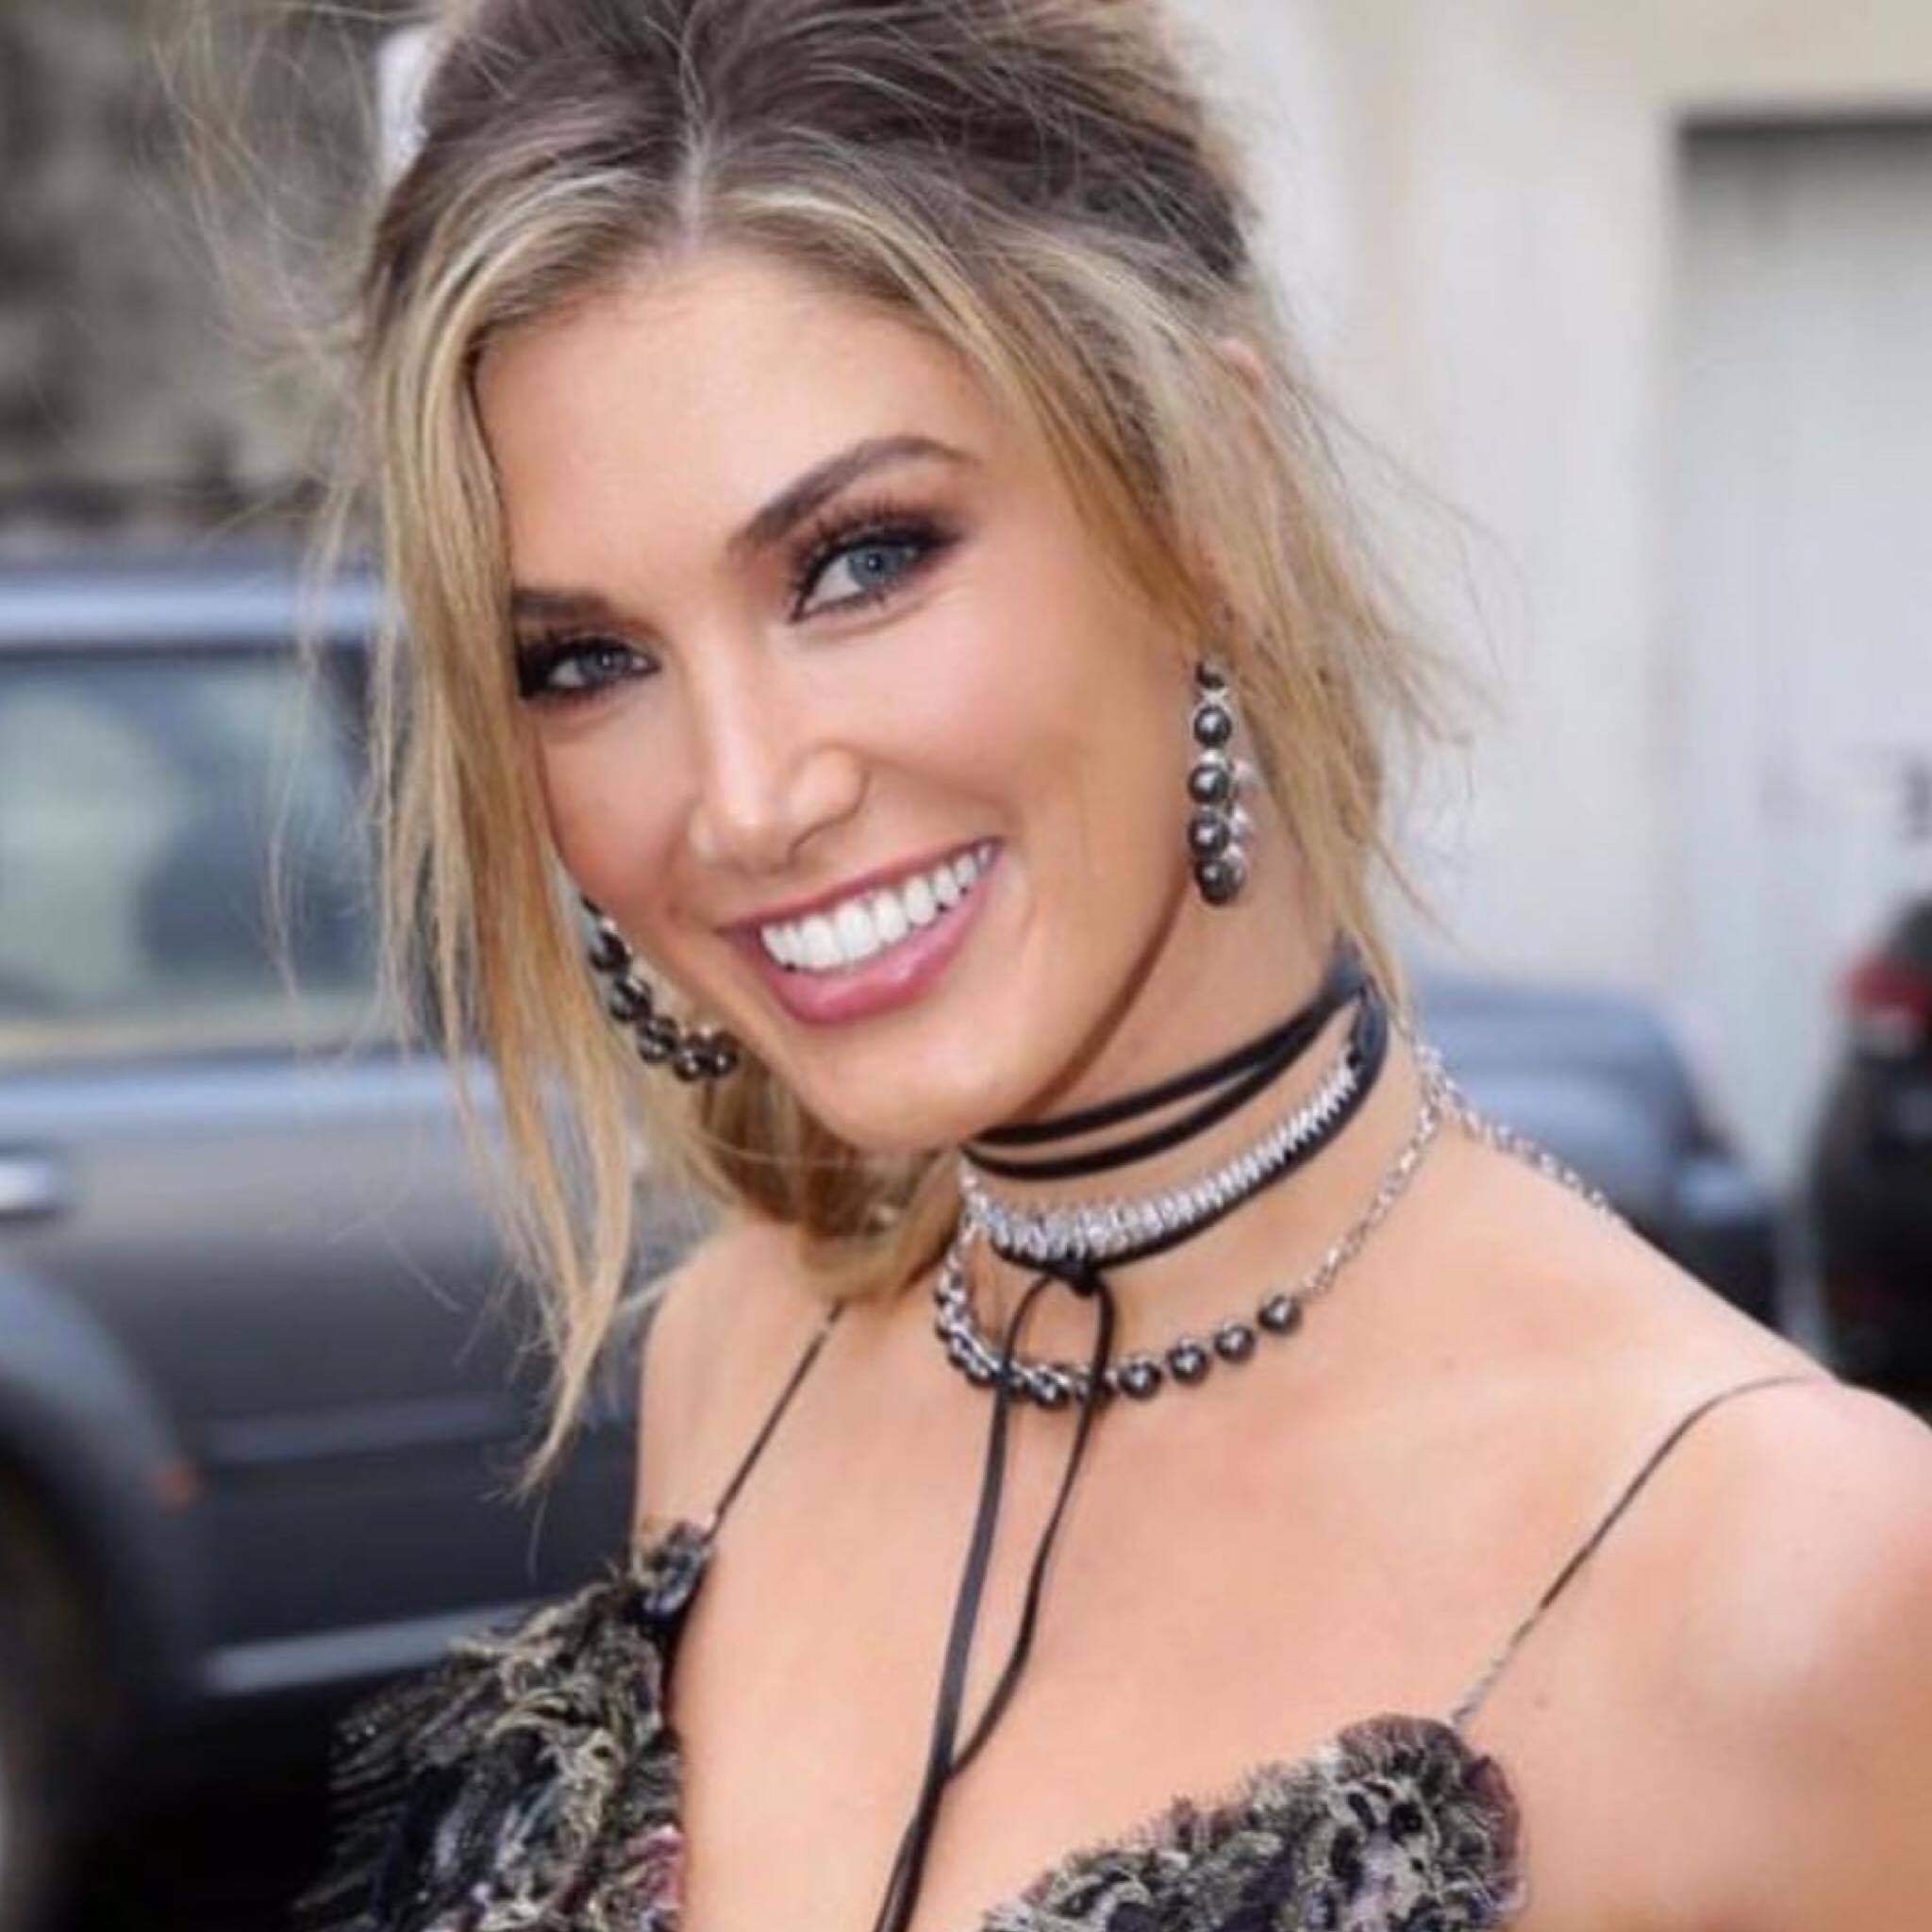 Delta Goodrem wearing the Reverie Pearl Earrings and Choker